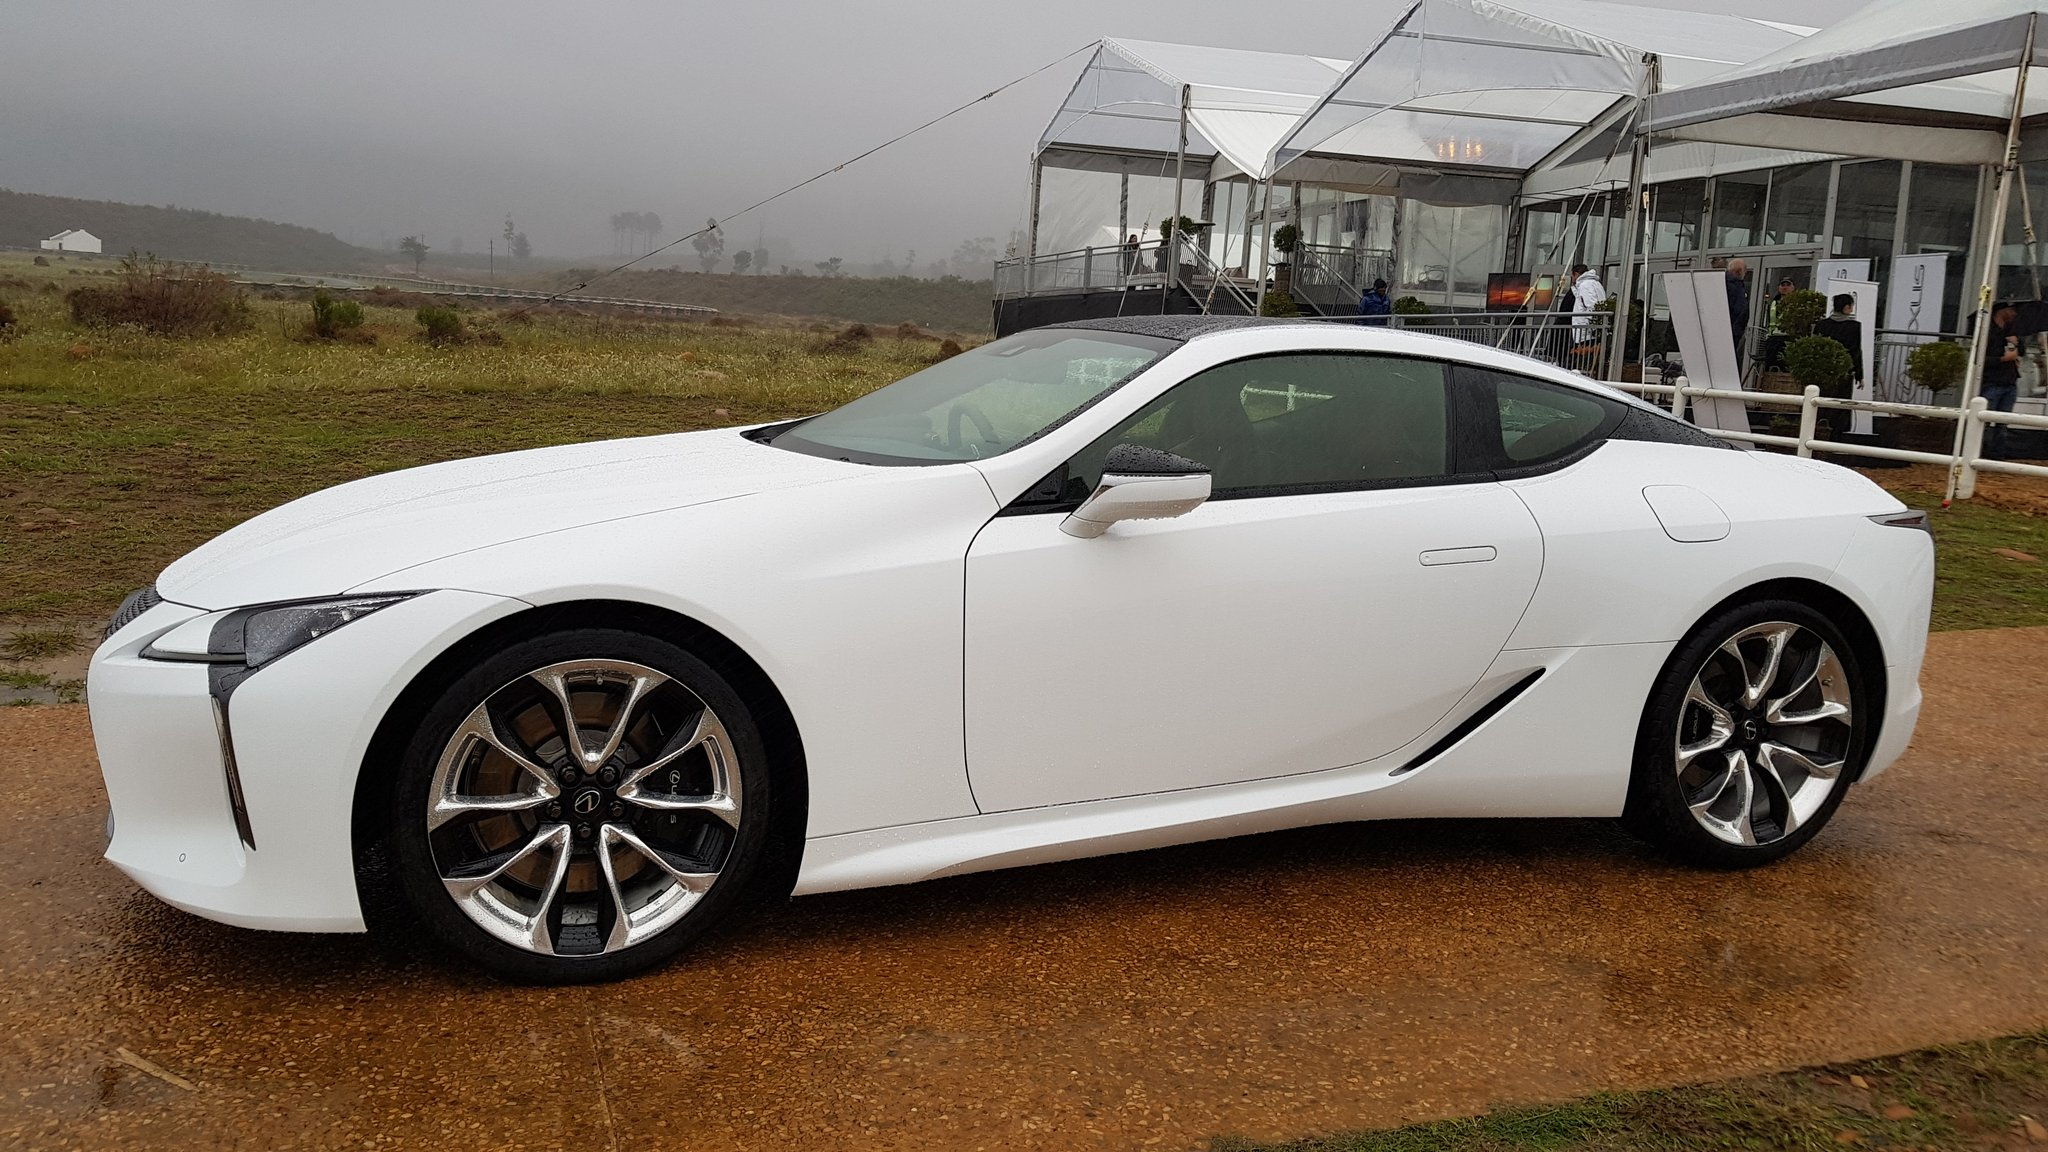 Lexus Lc 500 Arrives In South Africa With 5 0 Litre V8